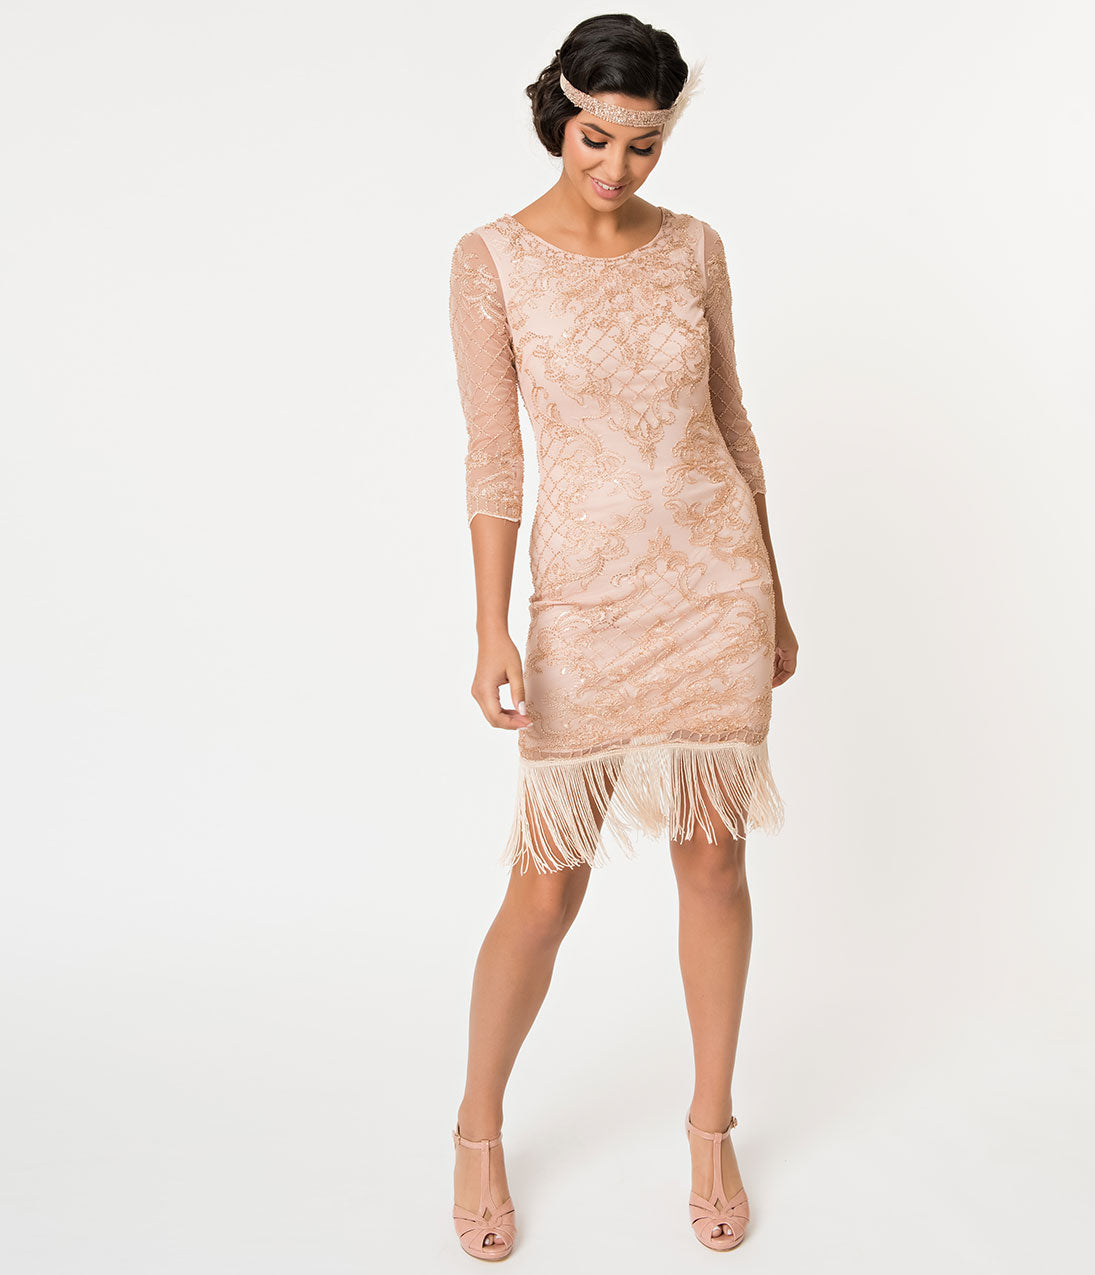 Flapper Dresses & Quality Flapper Costumes 1920S Style Rose Pink  Gold Beaded Sleeved Fringe Flapper Dress $110.00 AT vintagedancer.com